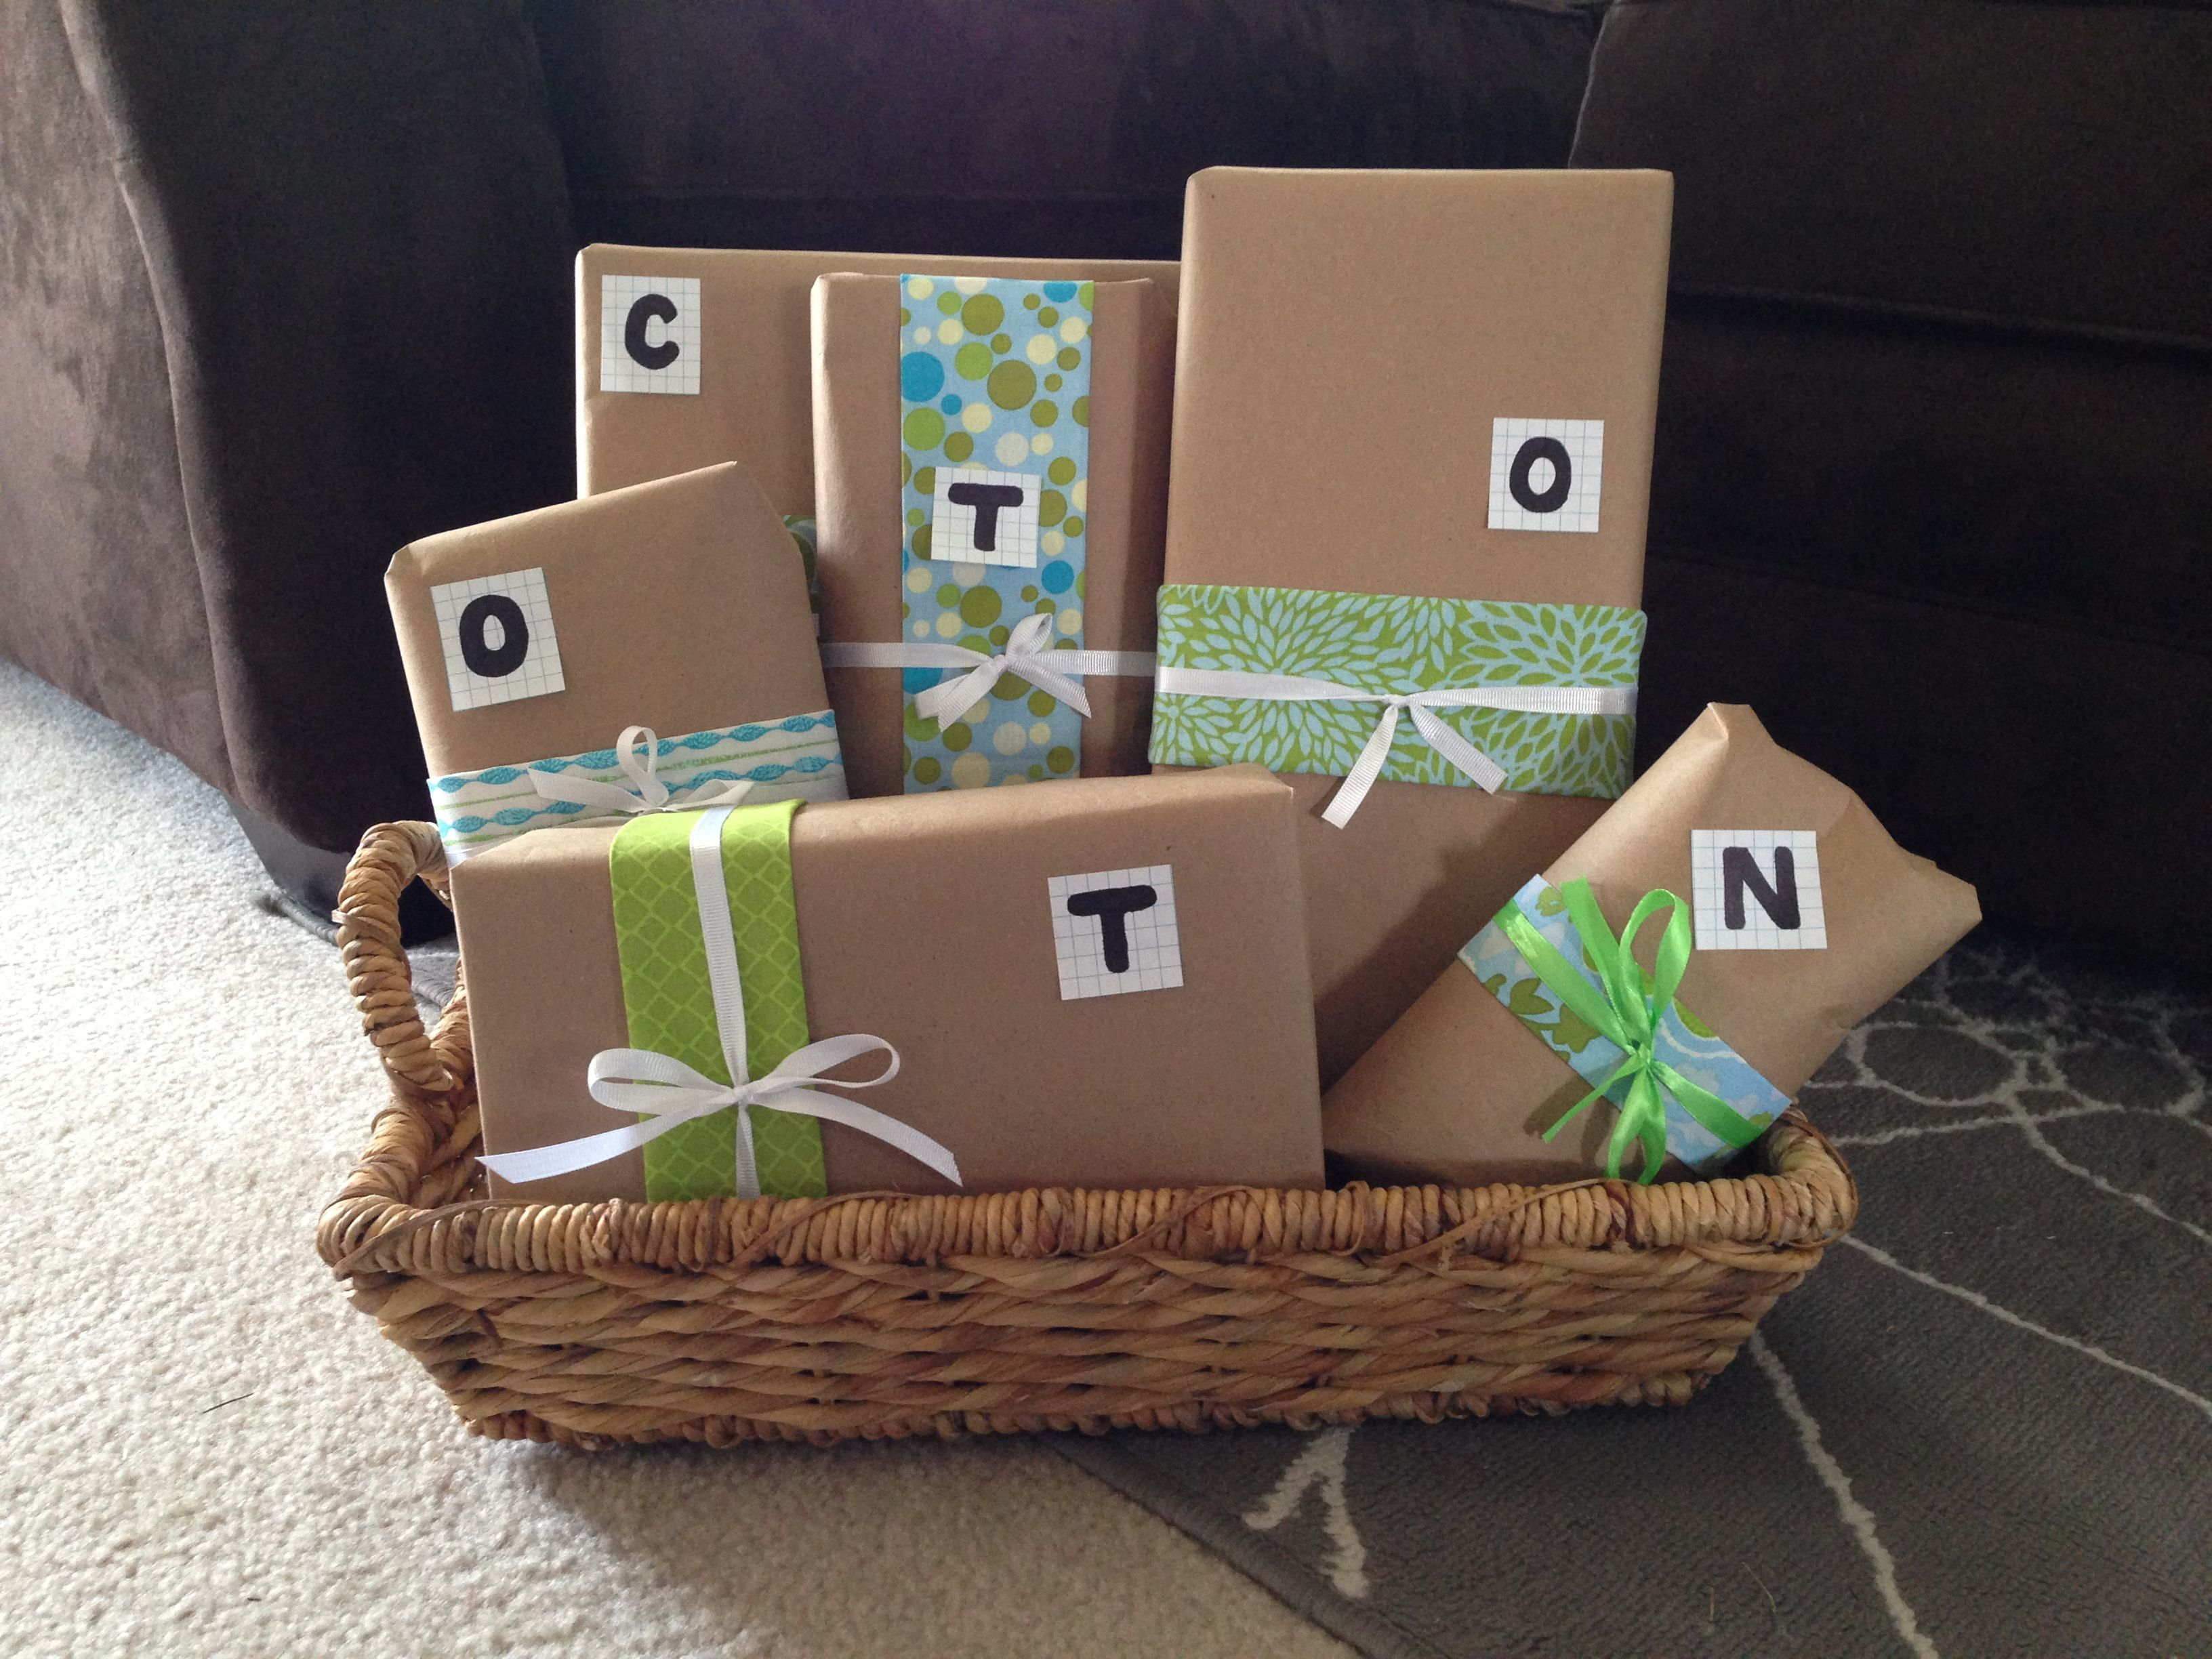 """Cotton Wedding Anniversary Gifts For Him: 2nd Anniversary Gift For """"COTTON"""" C=corn Hole Bags O=dOnut"""